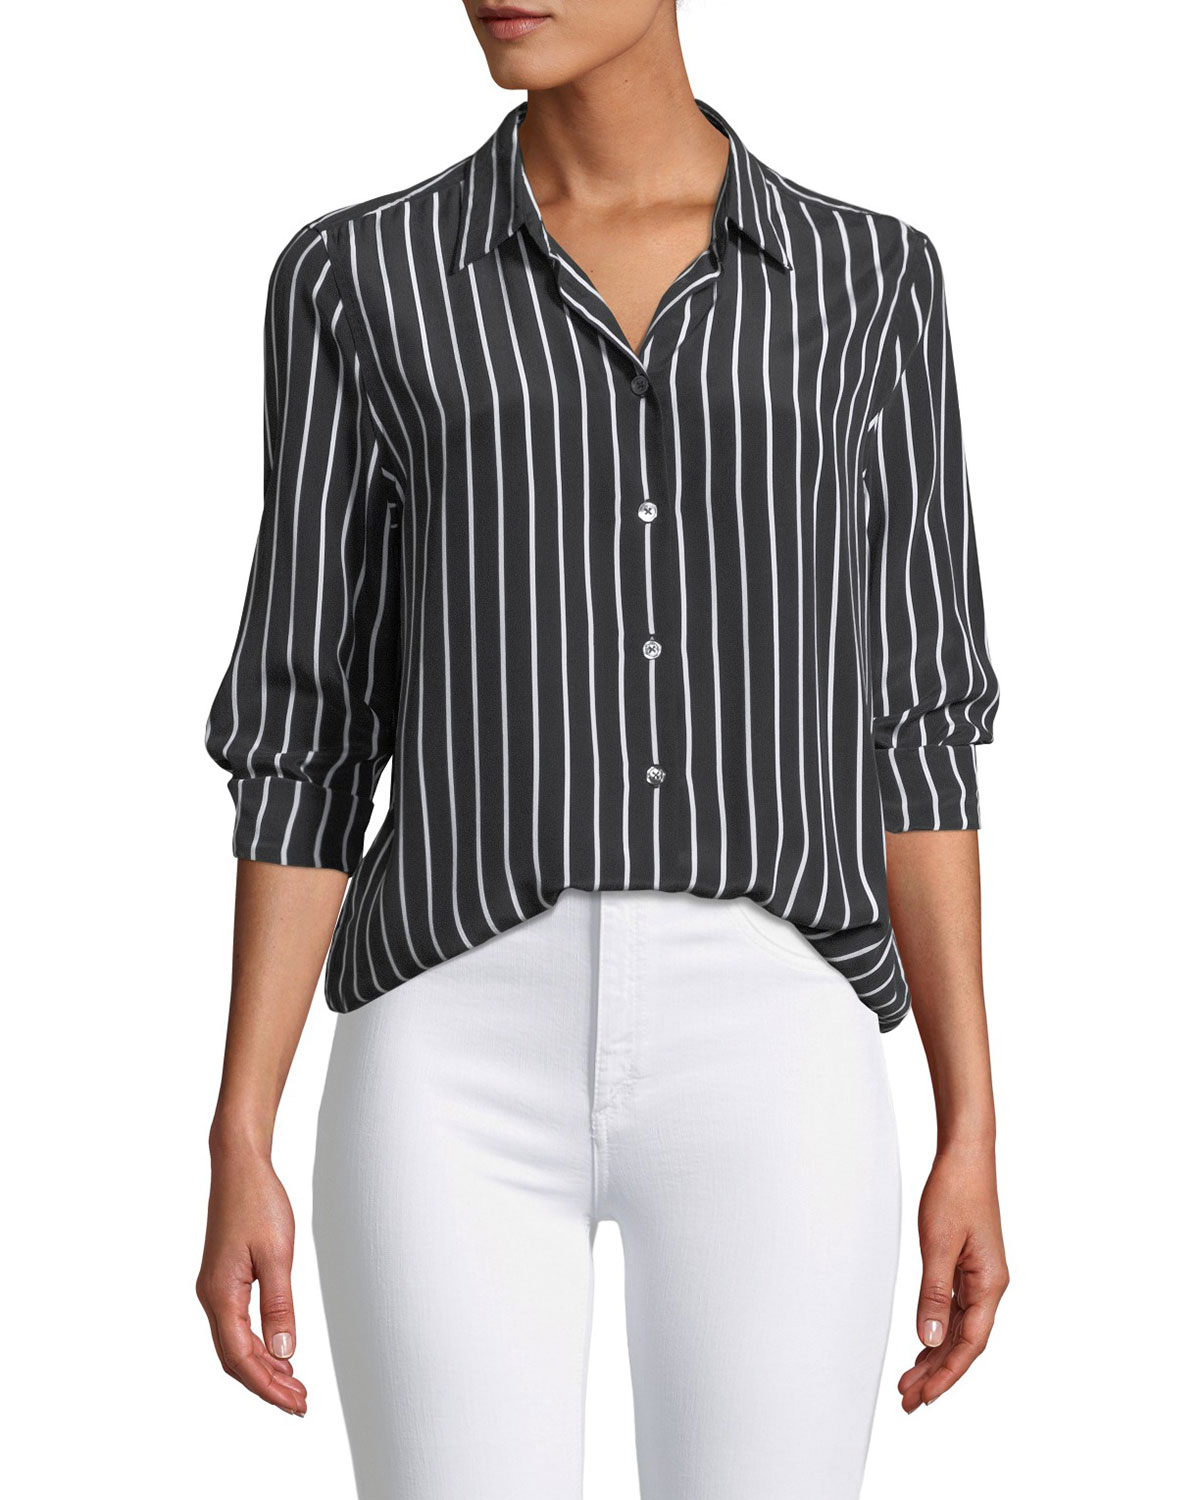 9a72635fc1945 Equipment Essential Excellence Striped Silk Button-Front Shirt ...